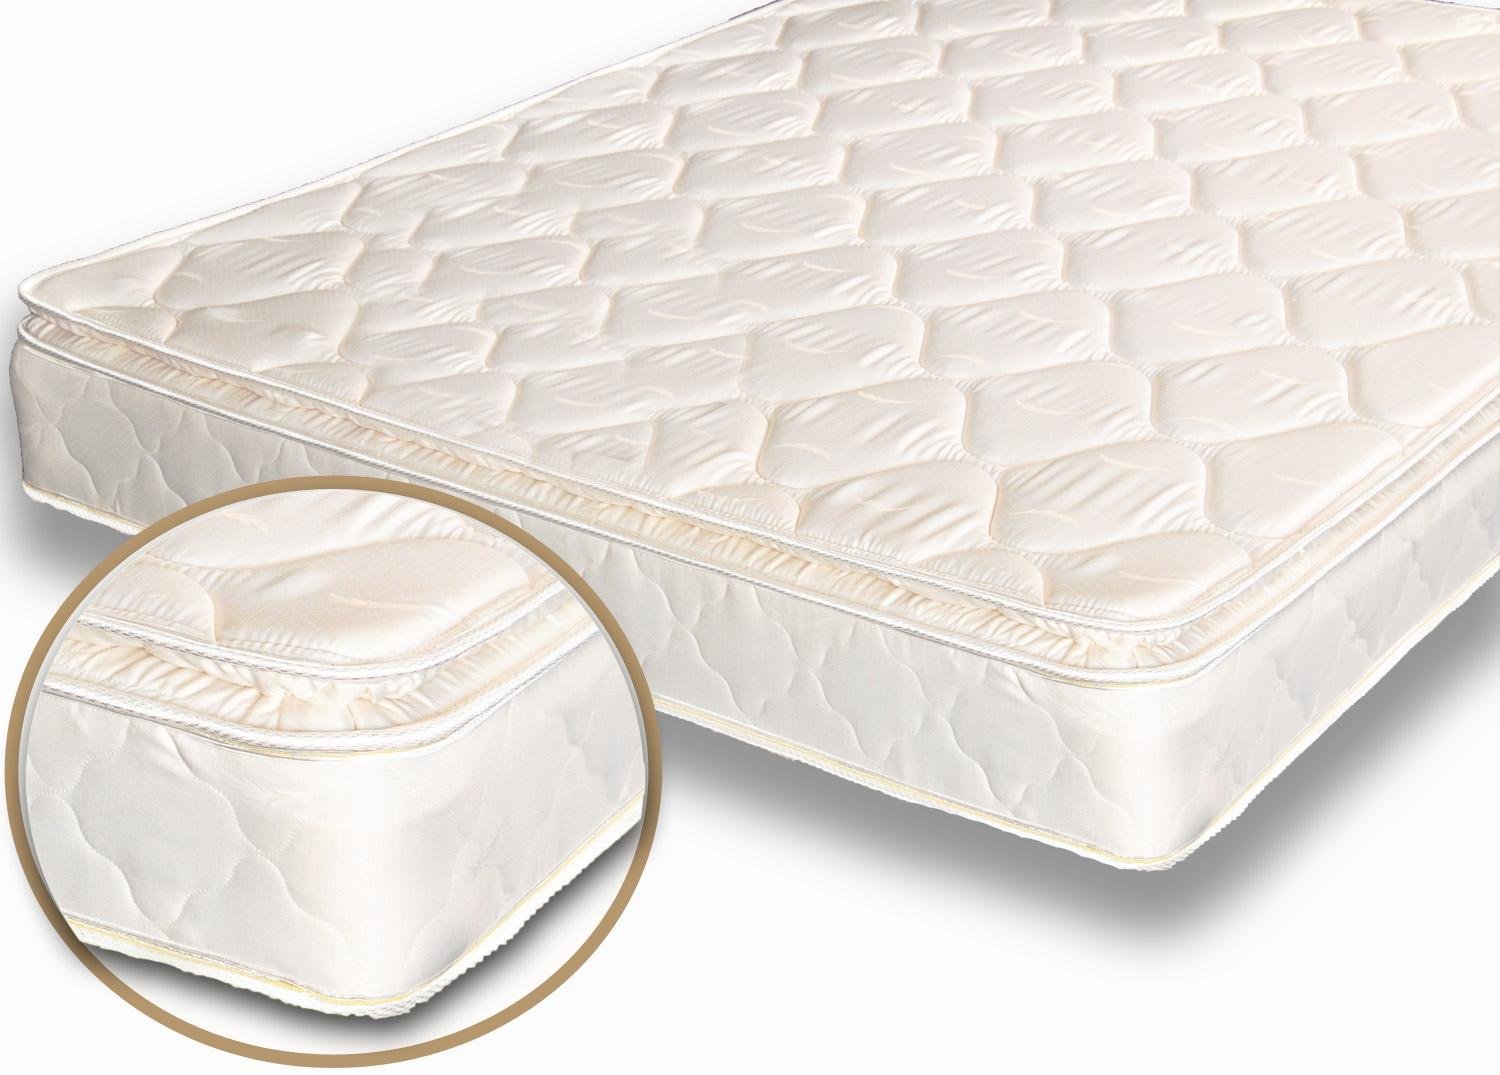 Rv mattress for sale rv mattress soft dreamer innerspring for Best soft bed pillows